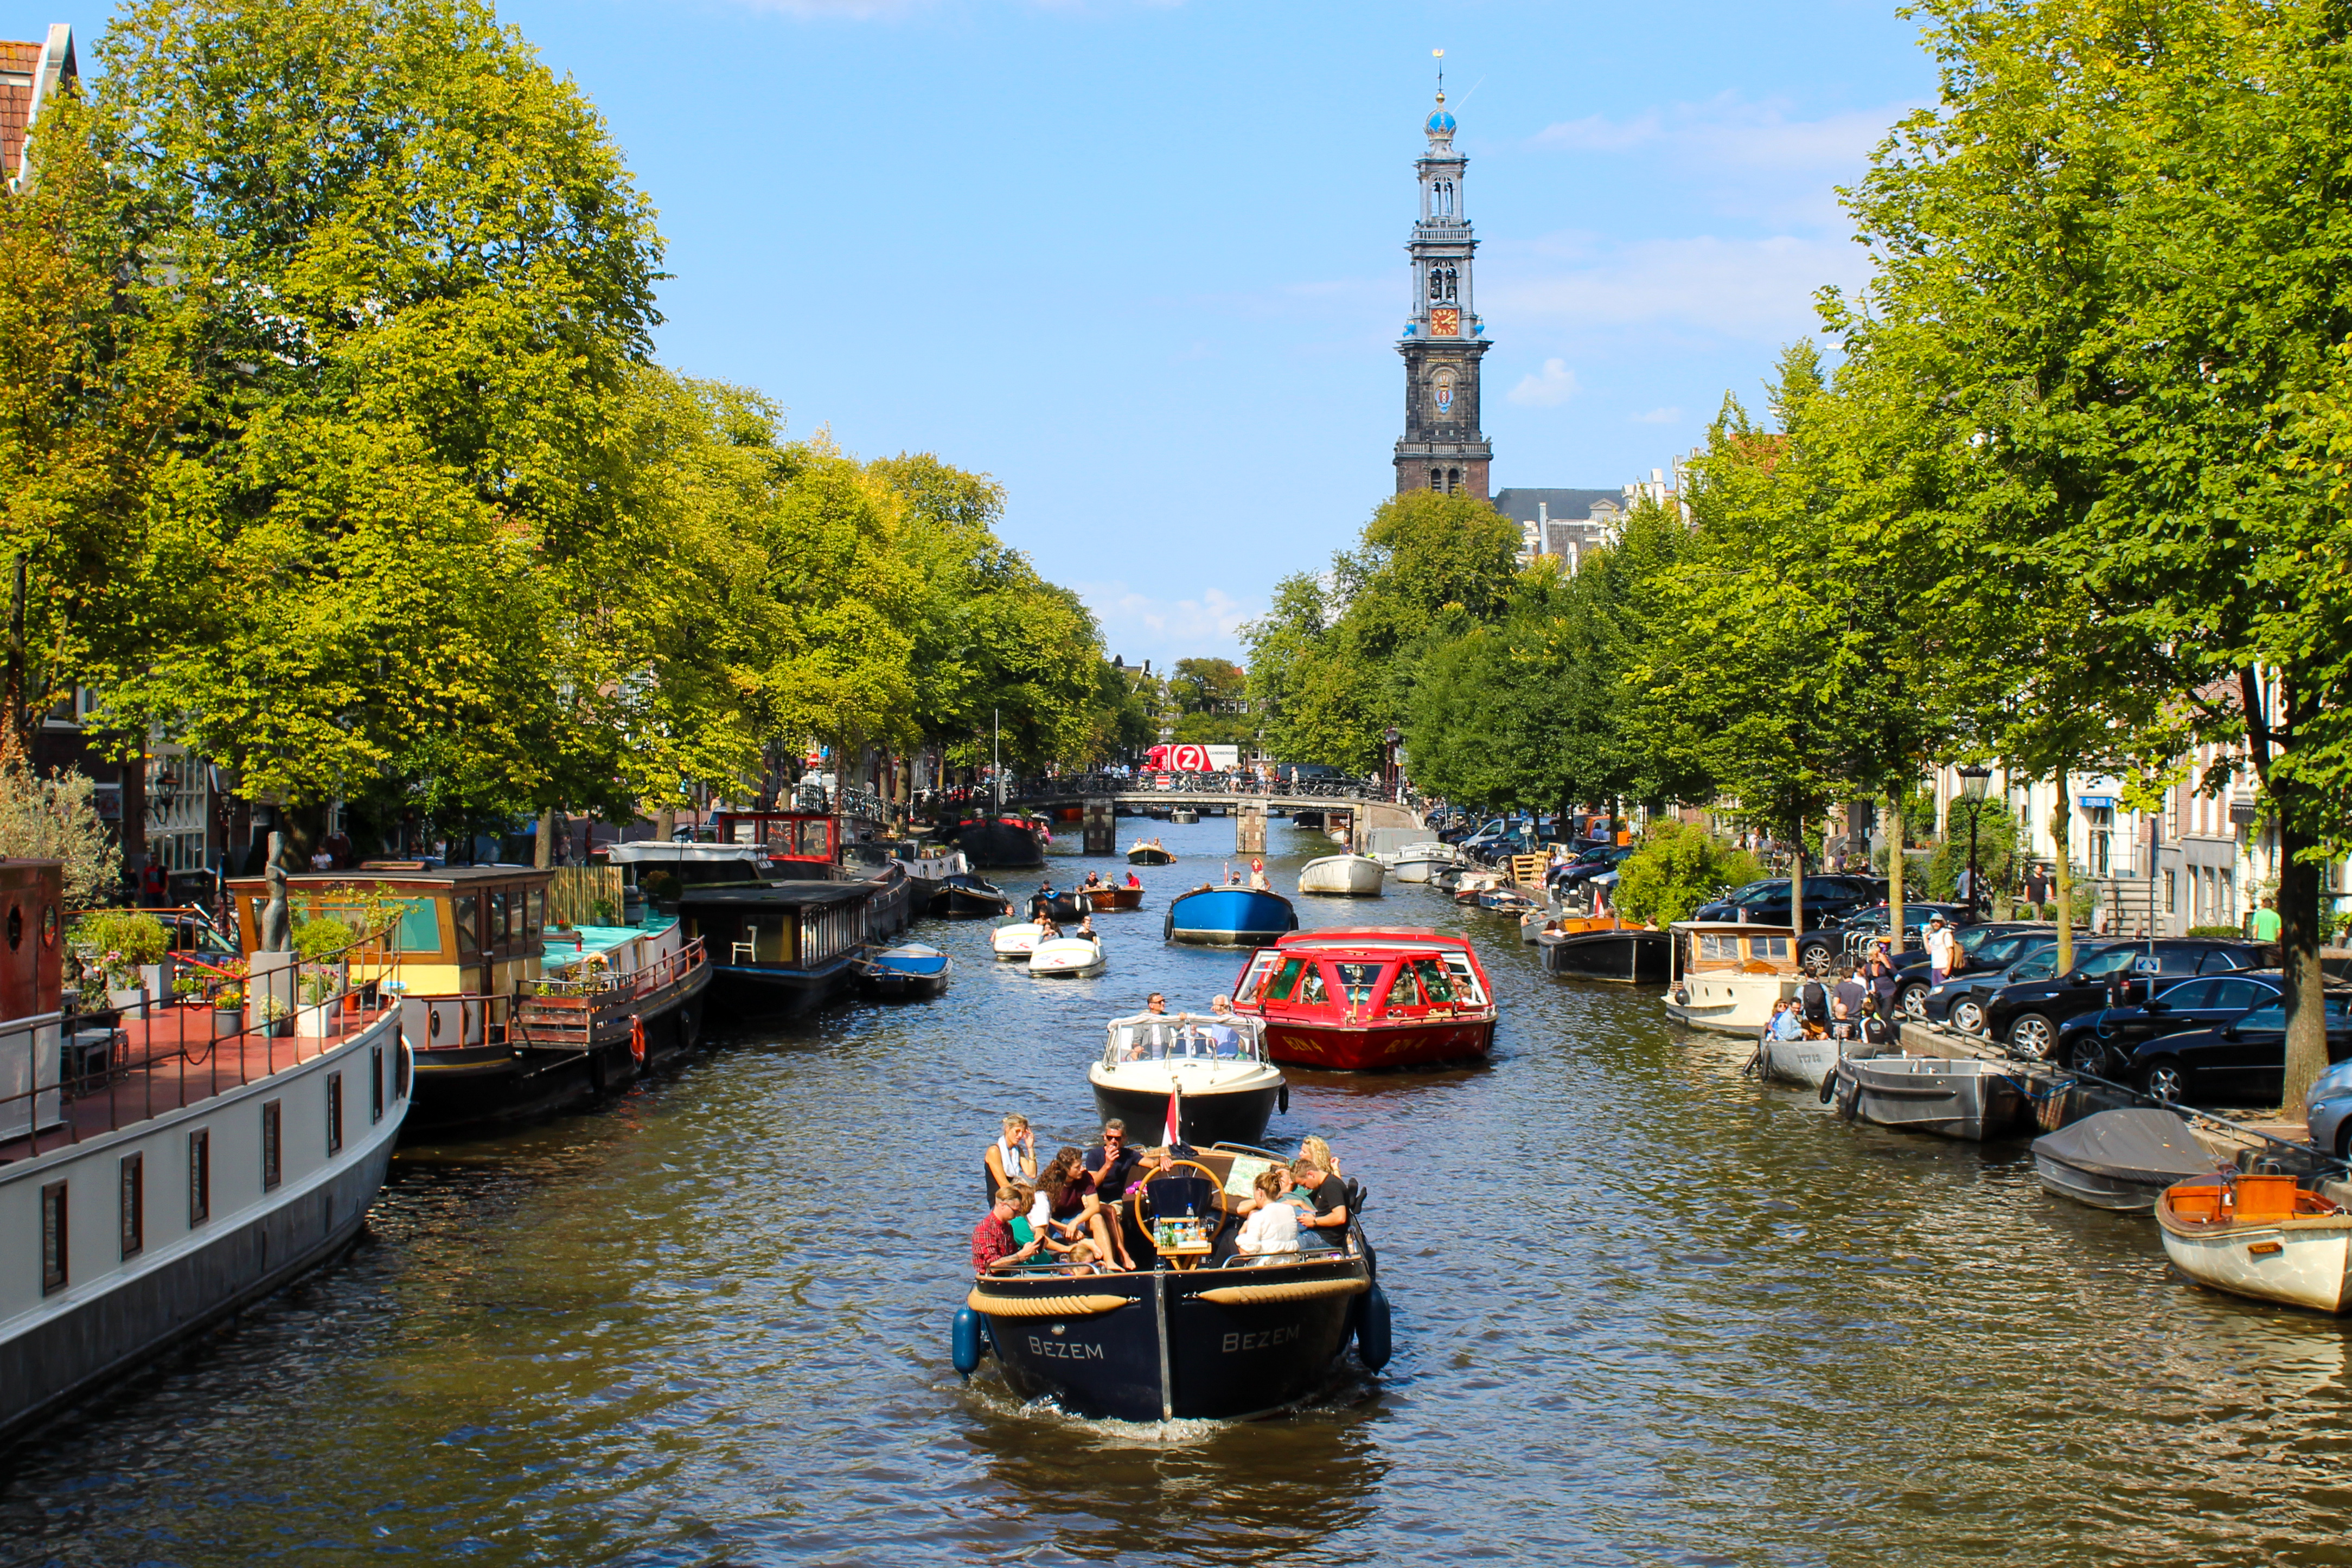 Canals Of Amsterdam Wikipedia Images, Photos, Reviews